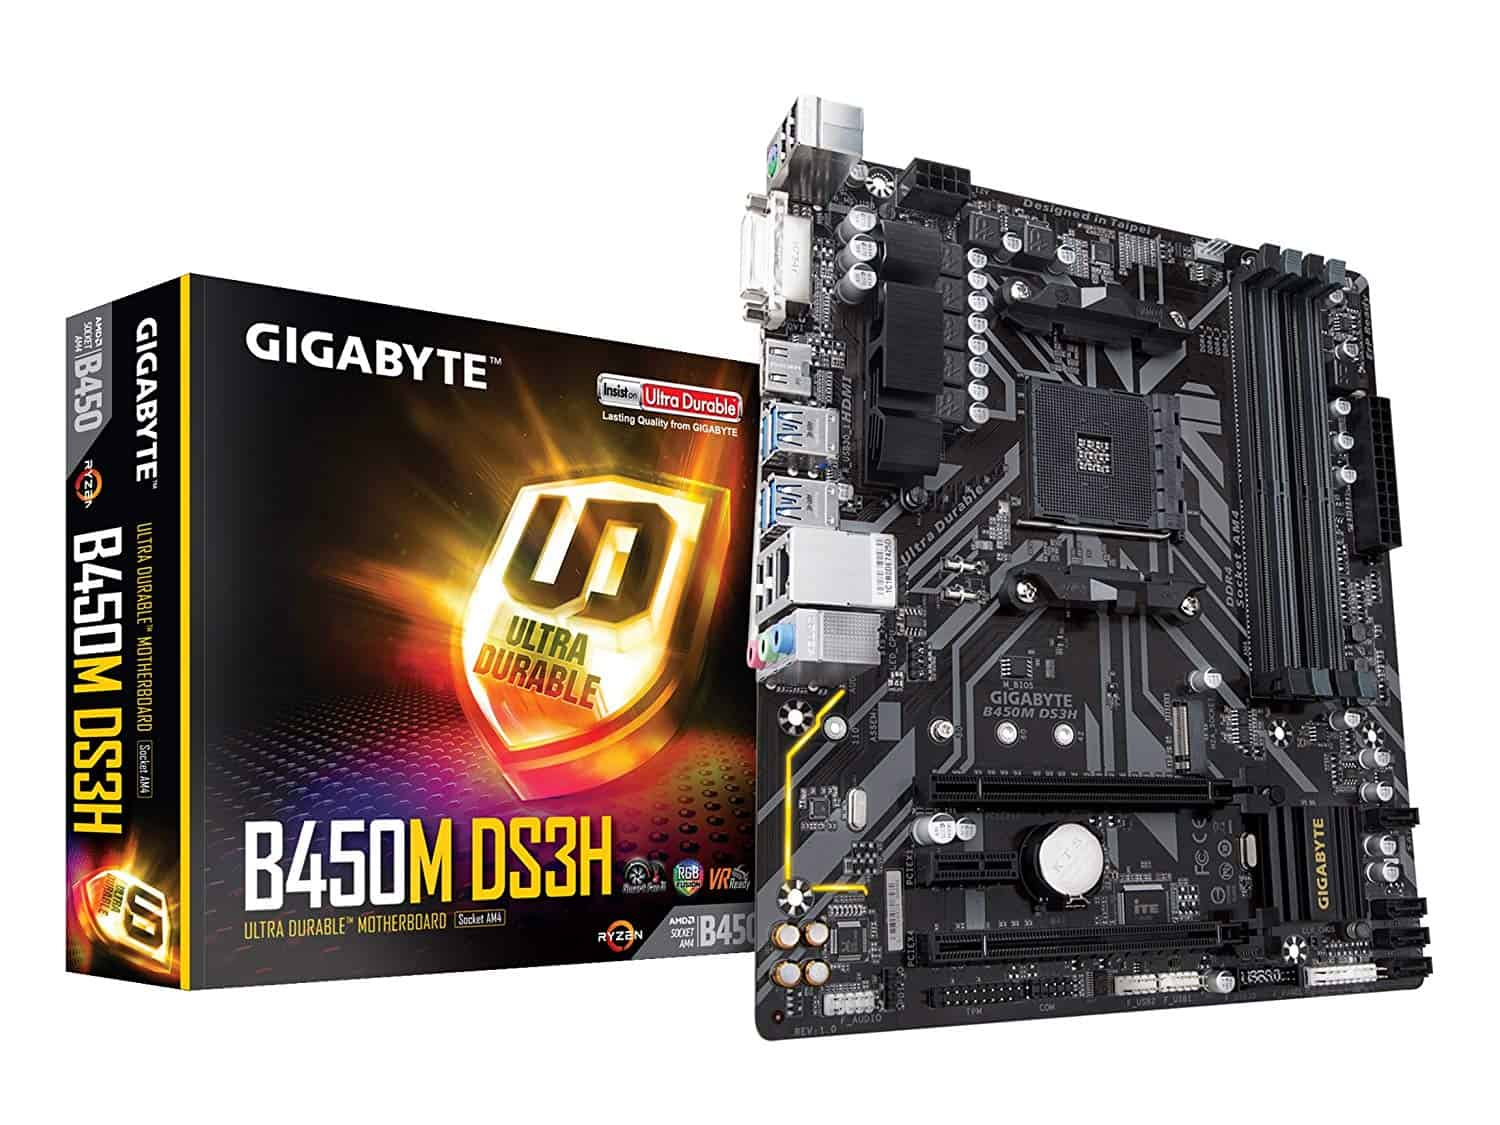 Best Gaming PC Under $600 [Updated for 2019] - The Ultimate Build